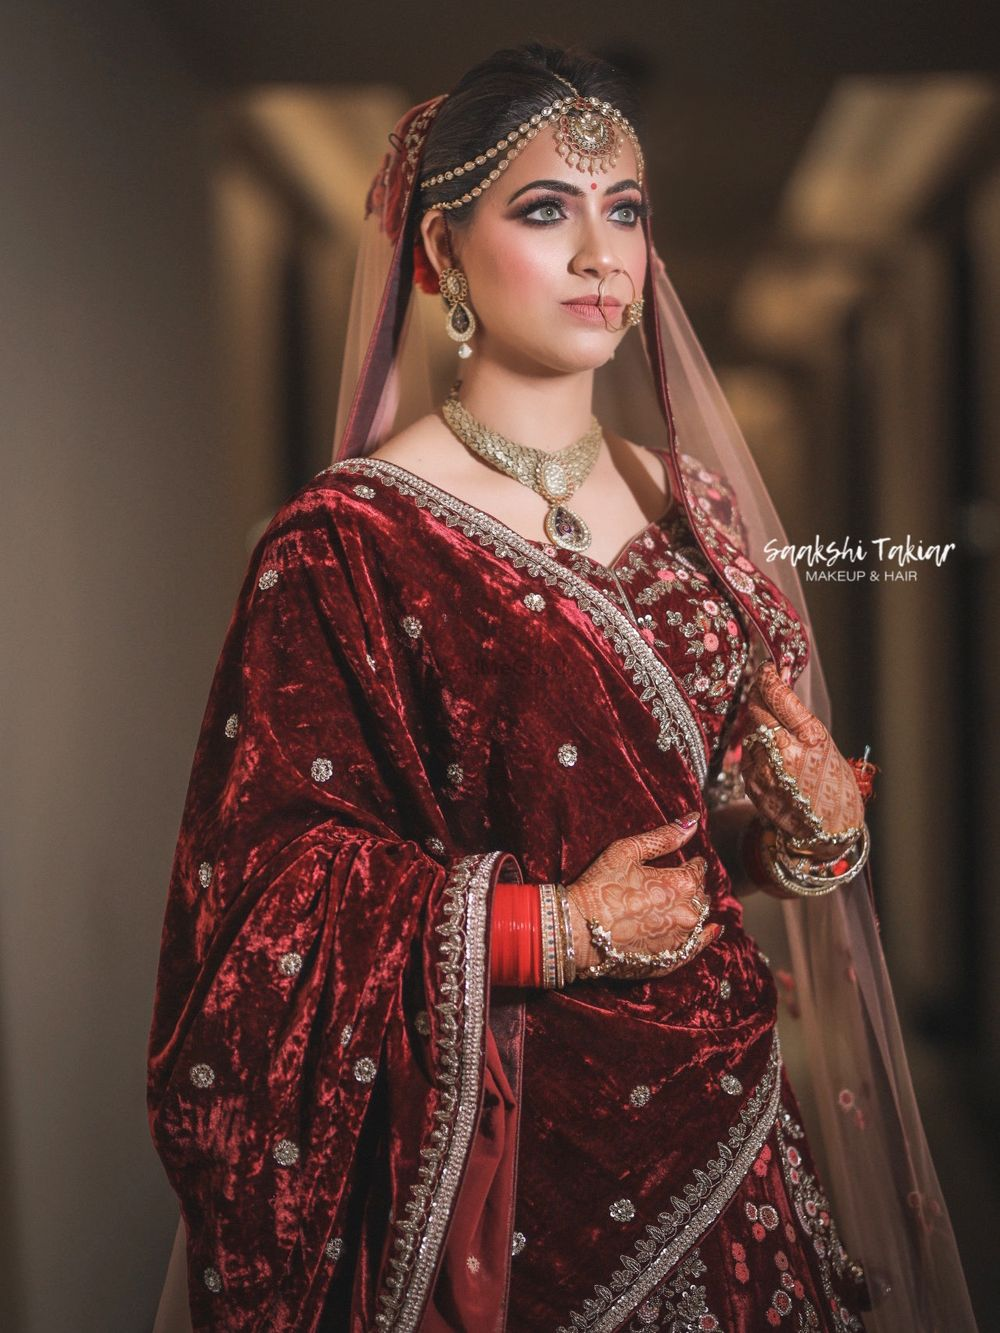 Photo From Nikhita's Wedding Makeup - By Makeup by Saakshi Takiar